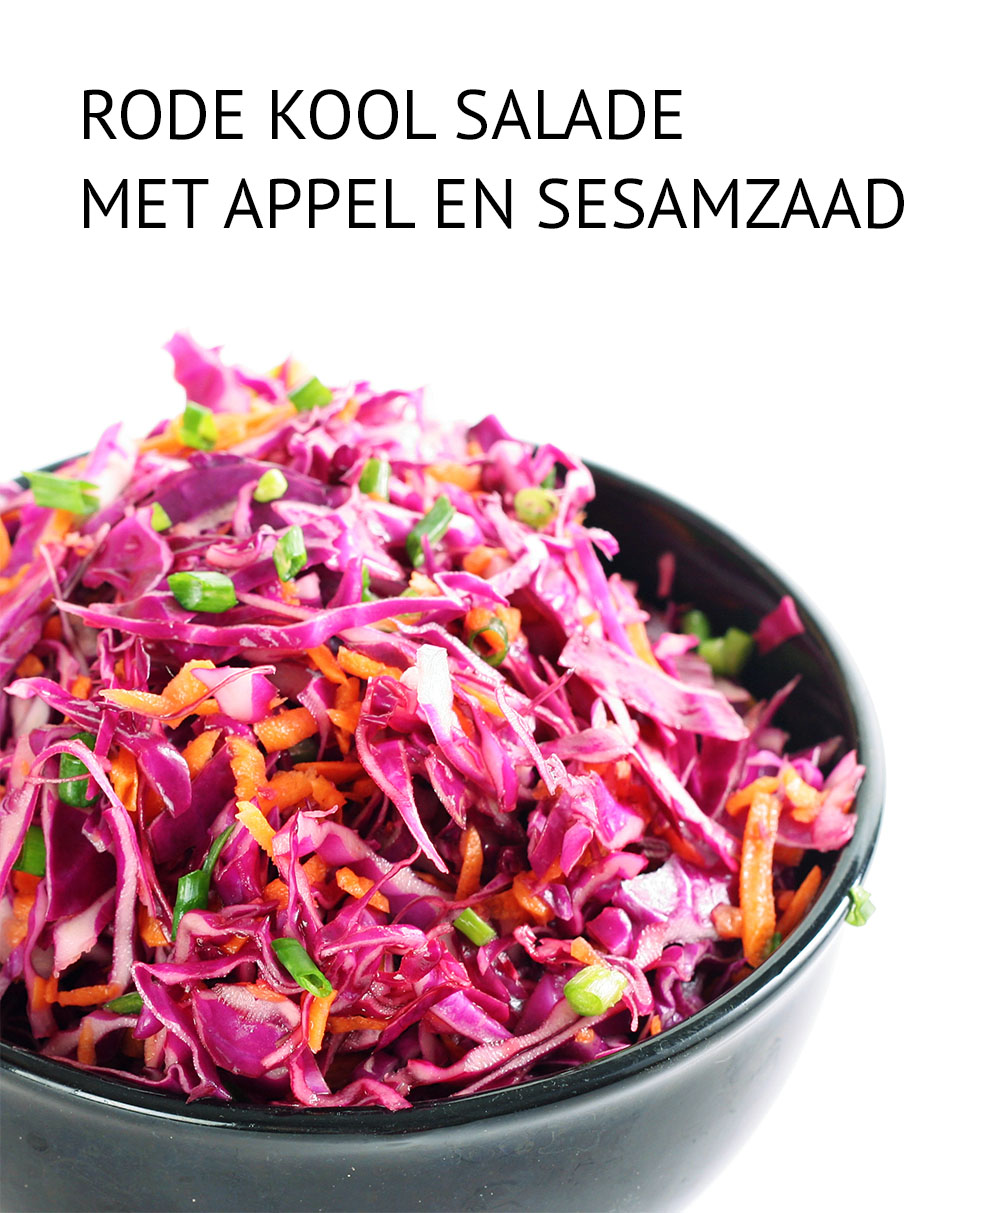 Empty the Fridge - Rode kool salade met appel en sesamzaad